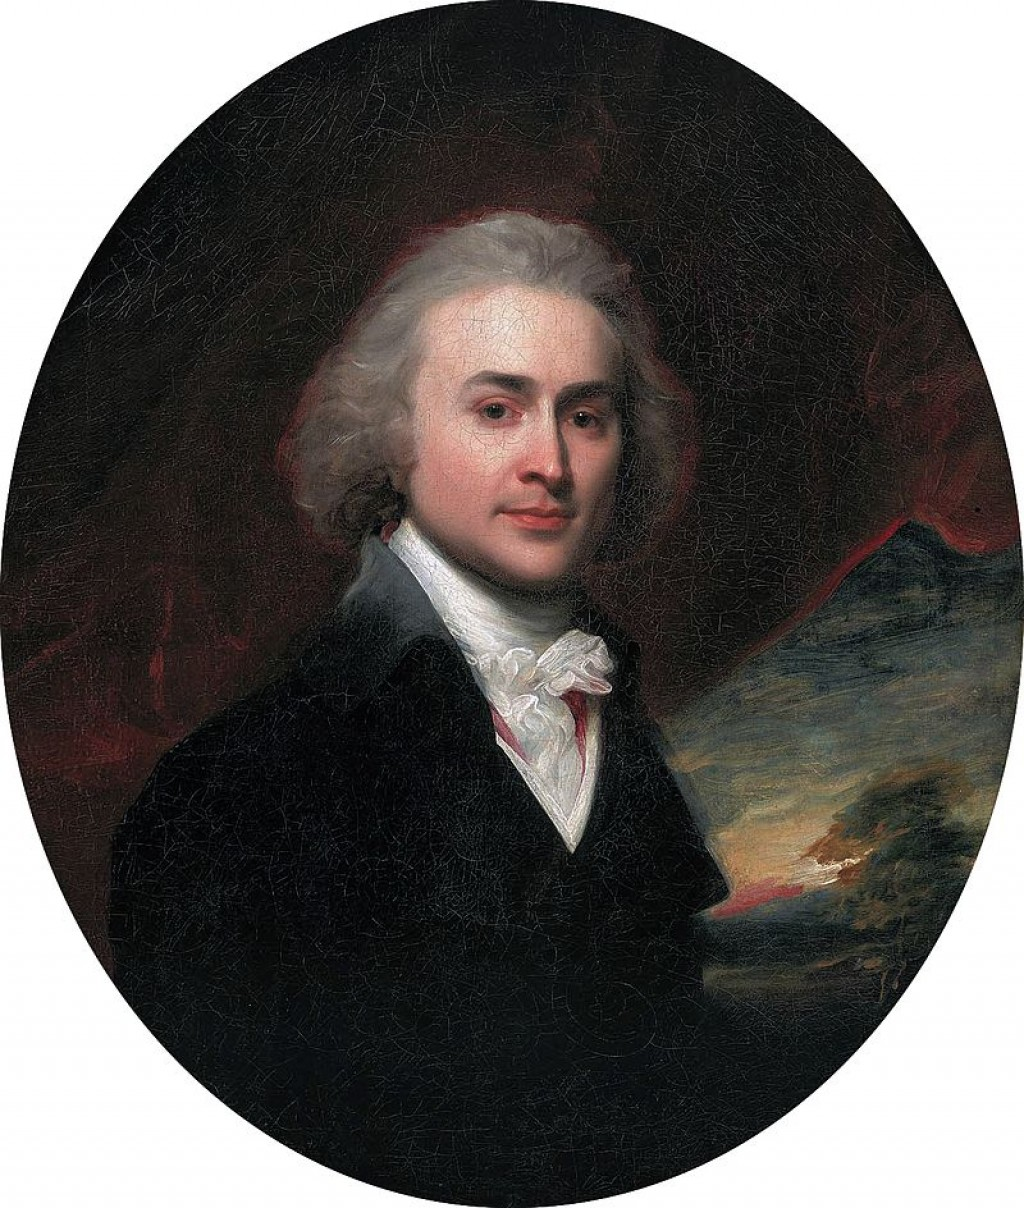 an introduction to the life and political history of president john adams John quincy adams short essay  john quincy adams john quincy adams was the son of charles francis adams where charles was the youngest son of adams - john quincy adams short essay introduction charles studied diplomacy and politics.